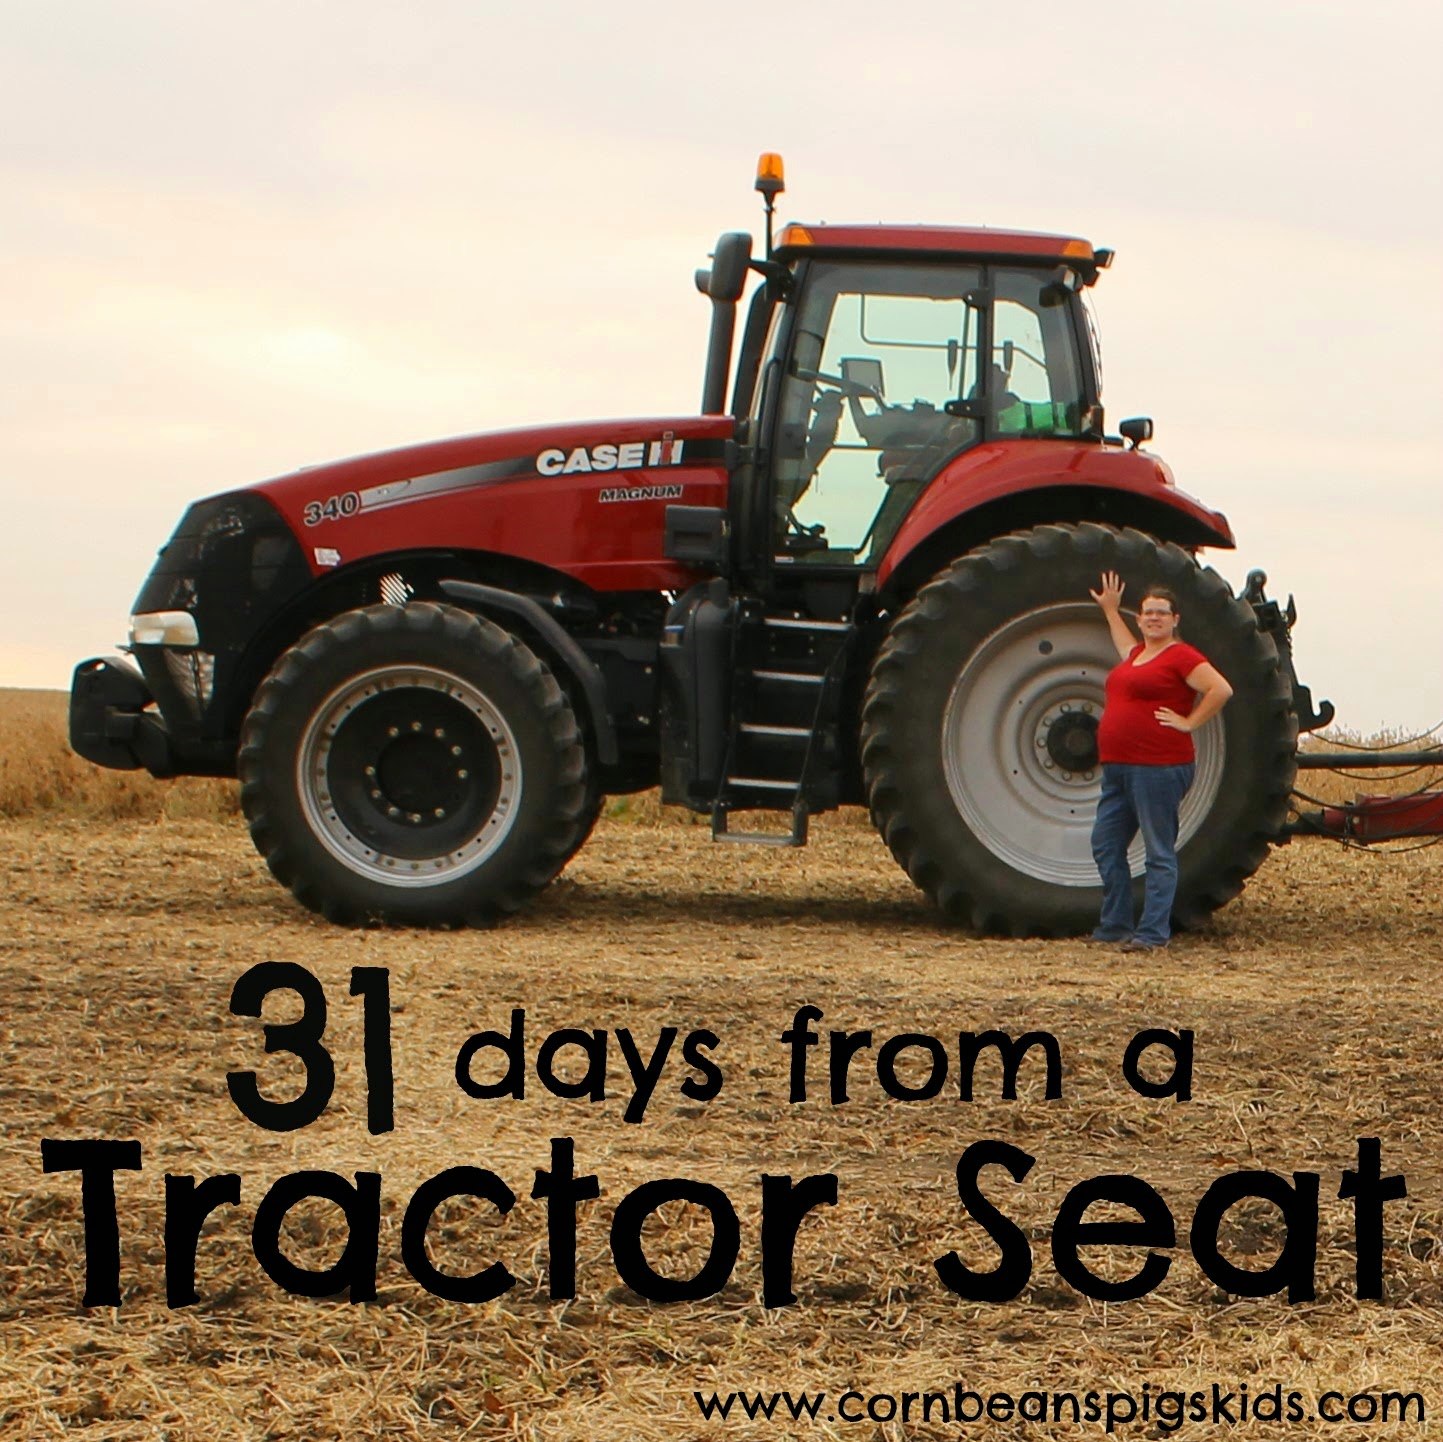 31 days from a Tractor Seat series